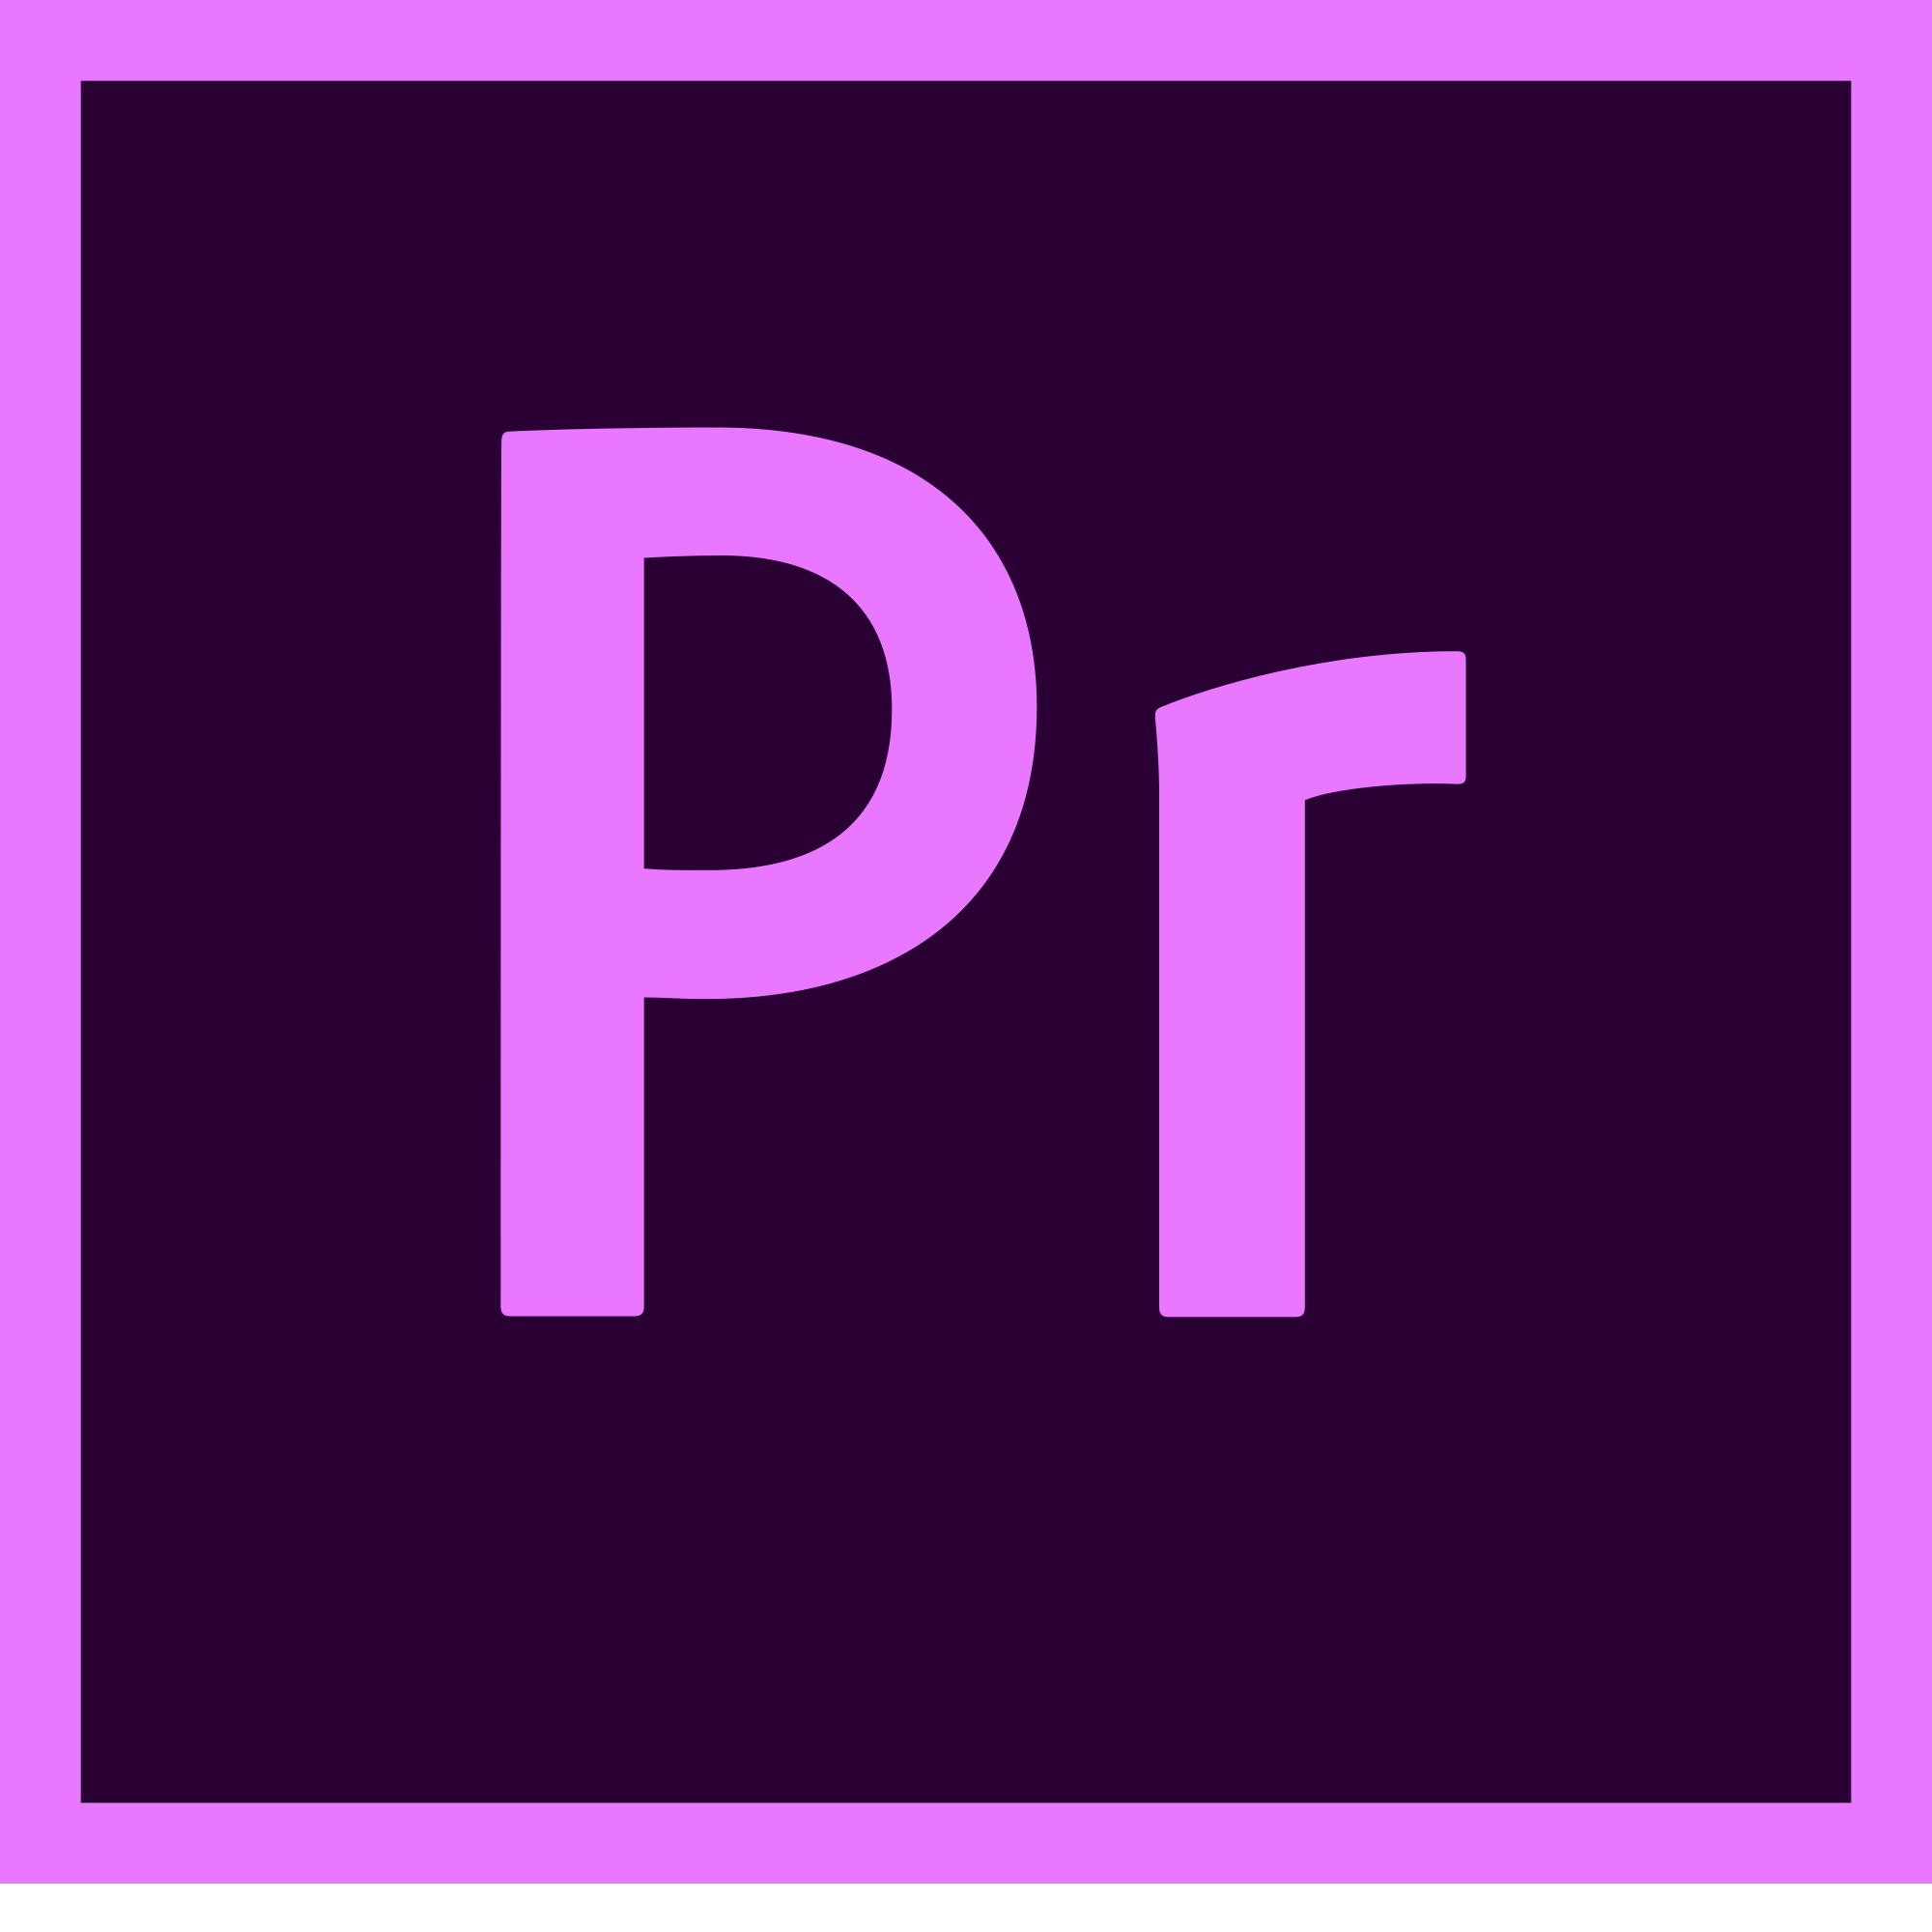 Will Create, Edit, convert quality of videos with Adobe Premiere Pro, any edits, any effects!